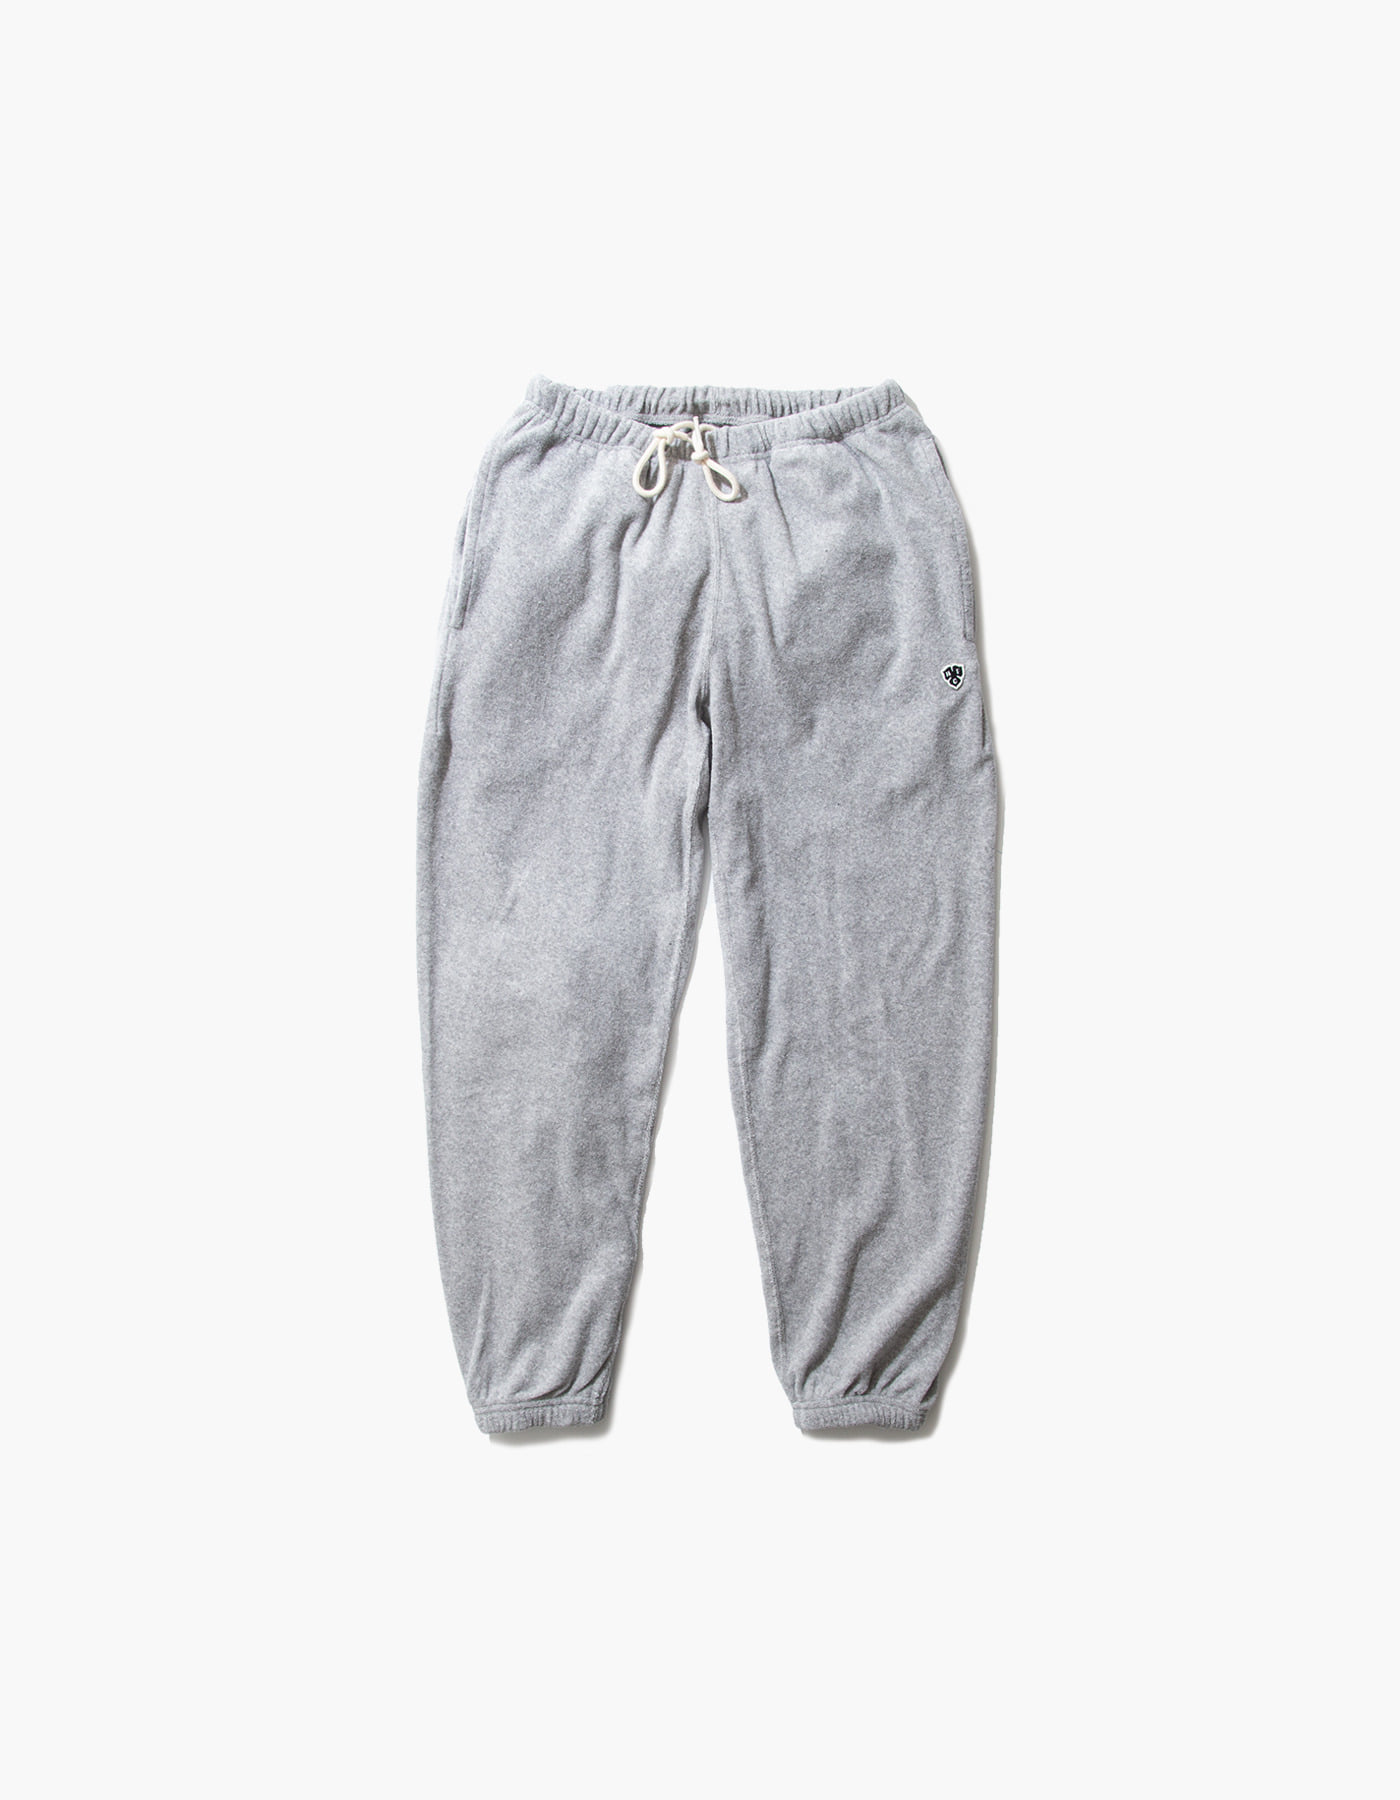 HFC CREST TOWEL JOGGER PANTS / M.GREY(5%)